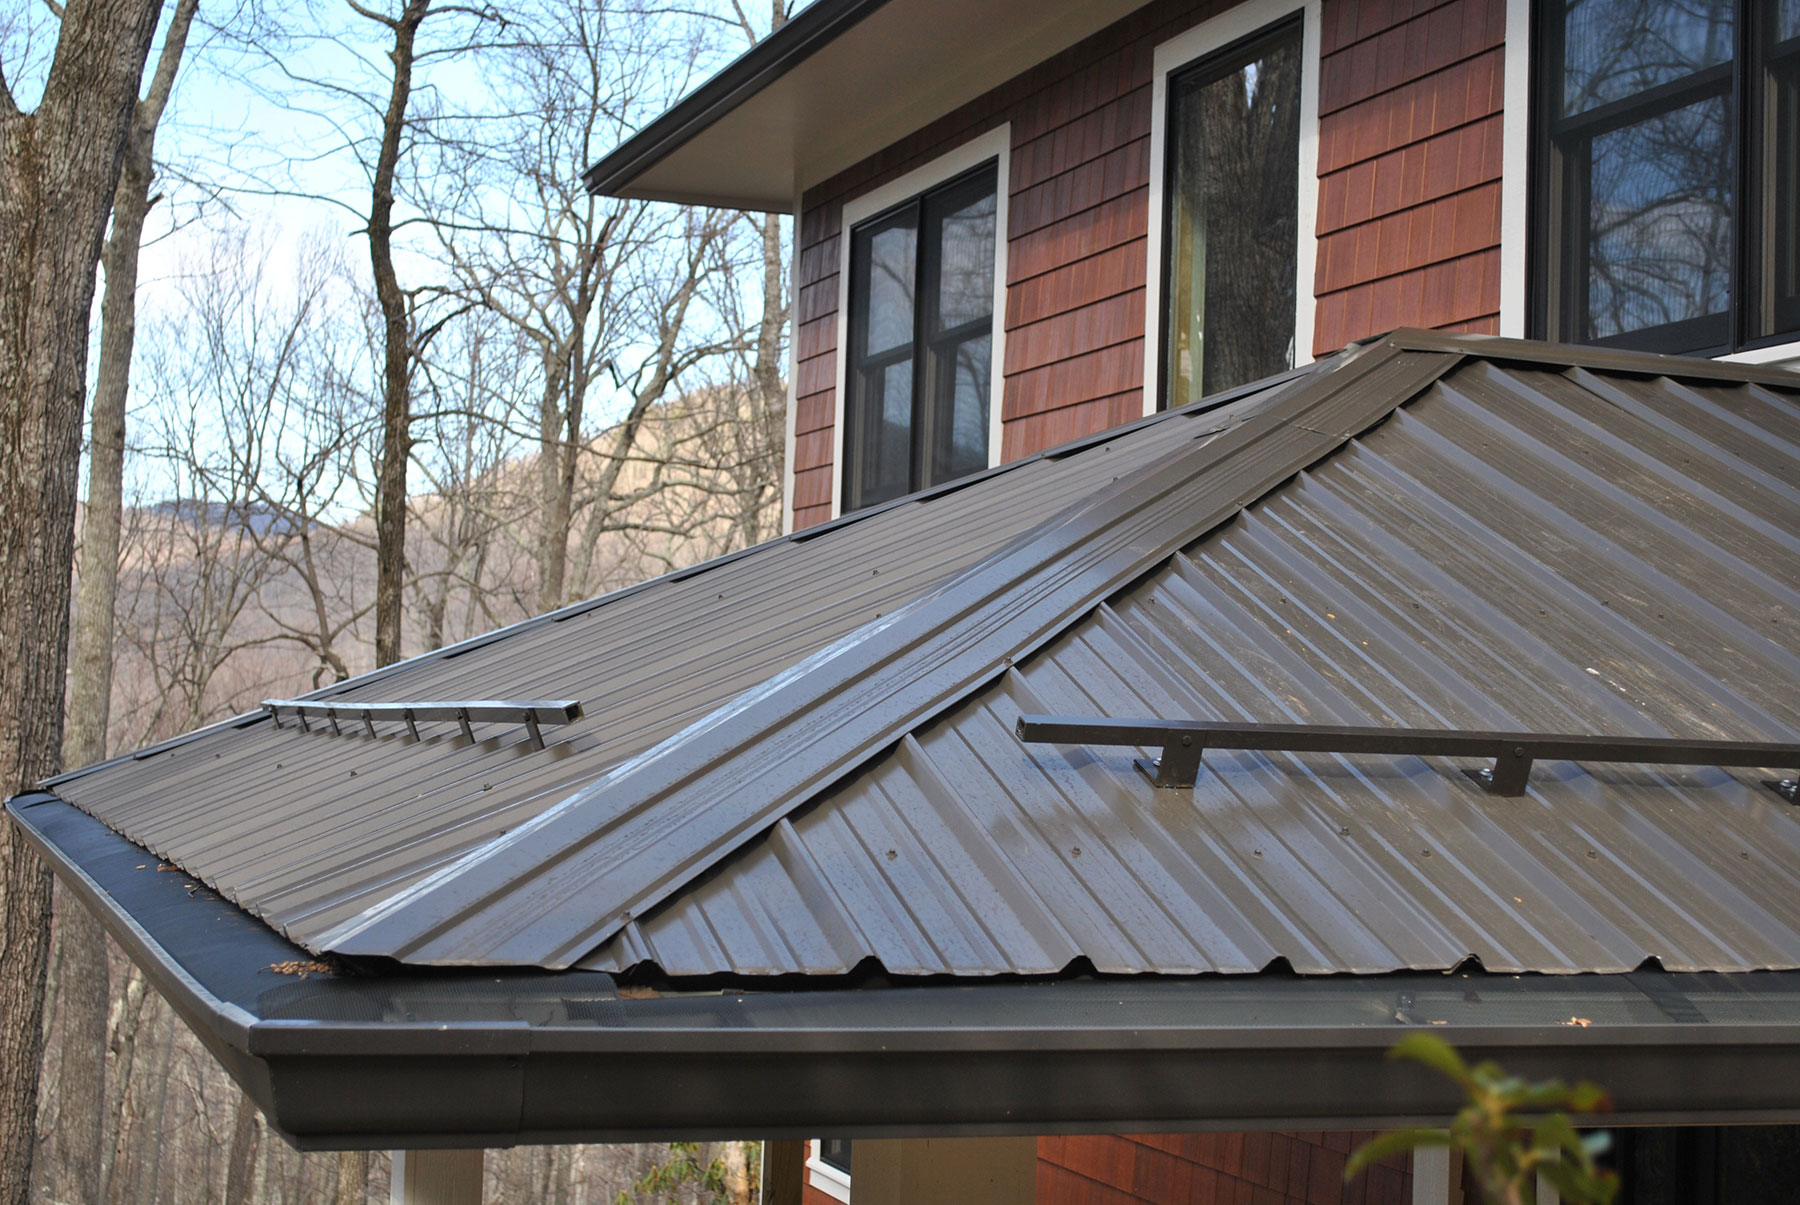 Marvelous Gutter Protection On Metal Roofs Higher Ground Chattanooga